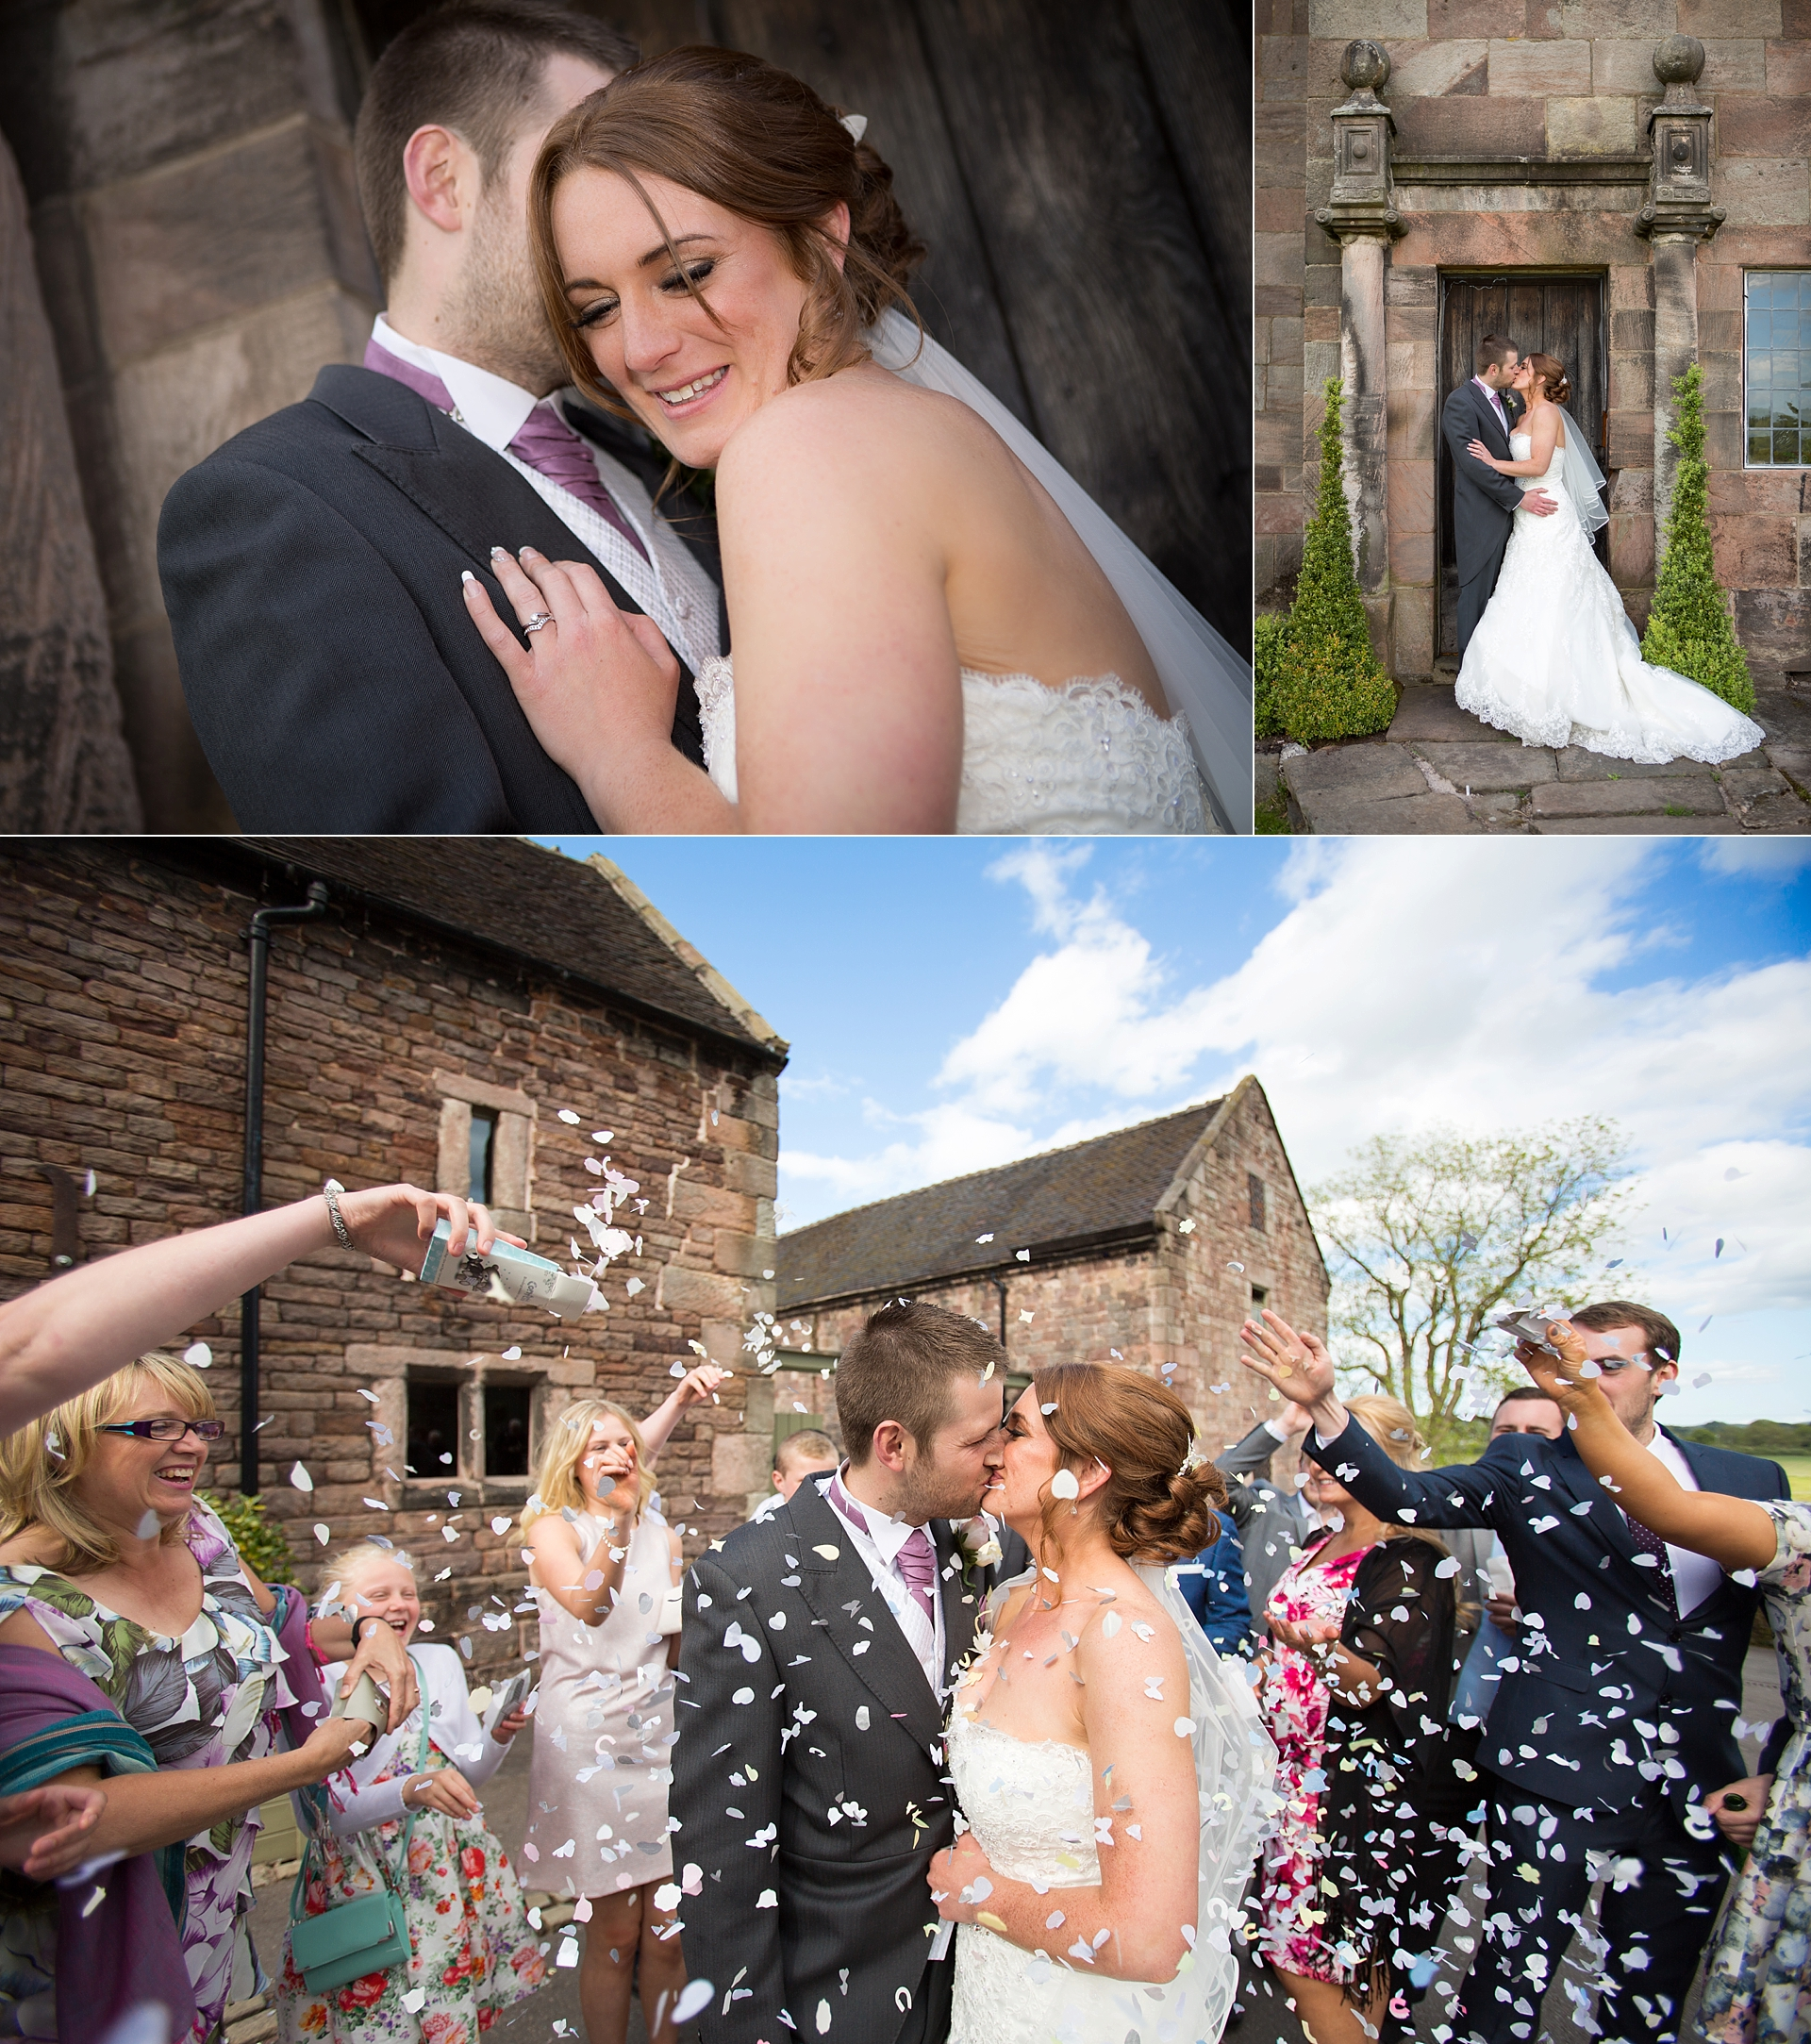 wedding photographer stoke on trent the ashes endon 12.jpg